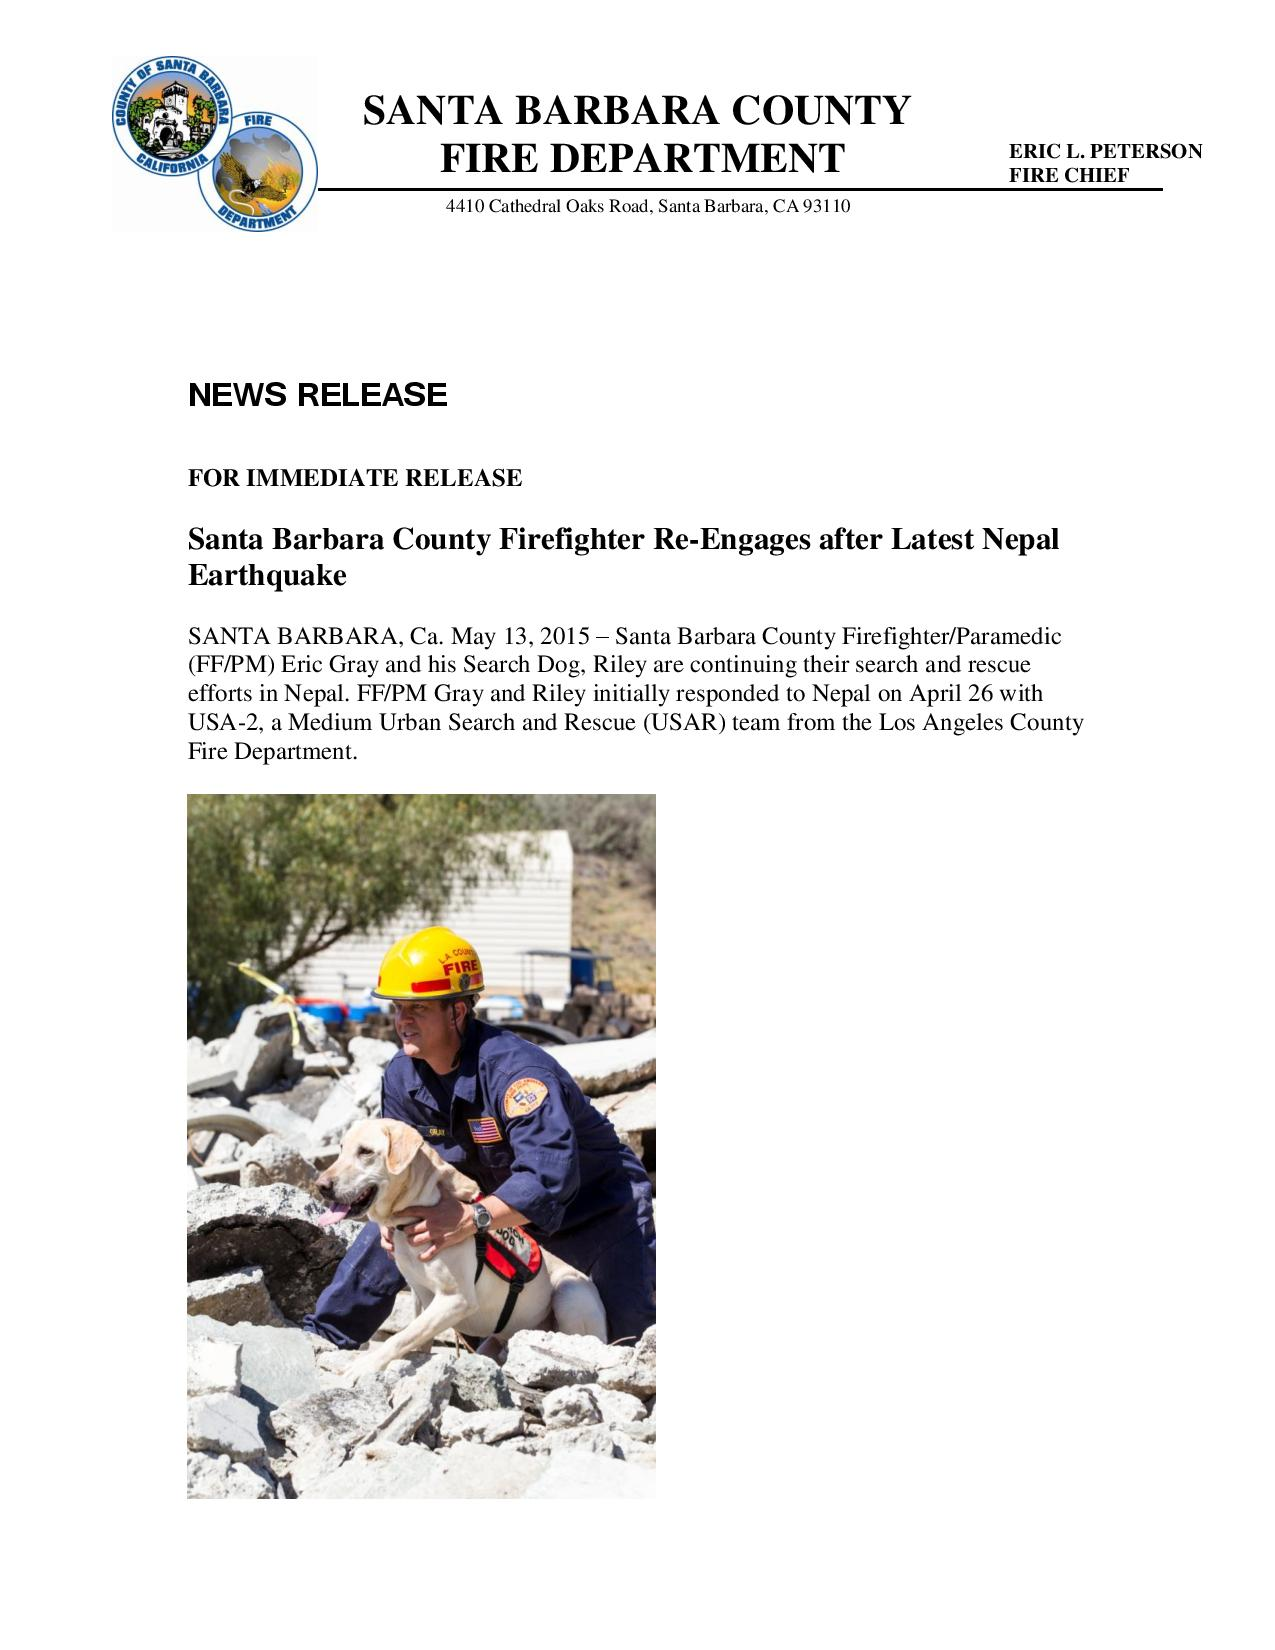 Firefighter Re-engages to Nepal-pg1